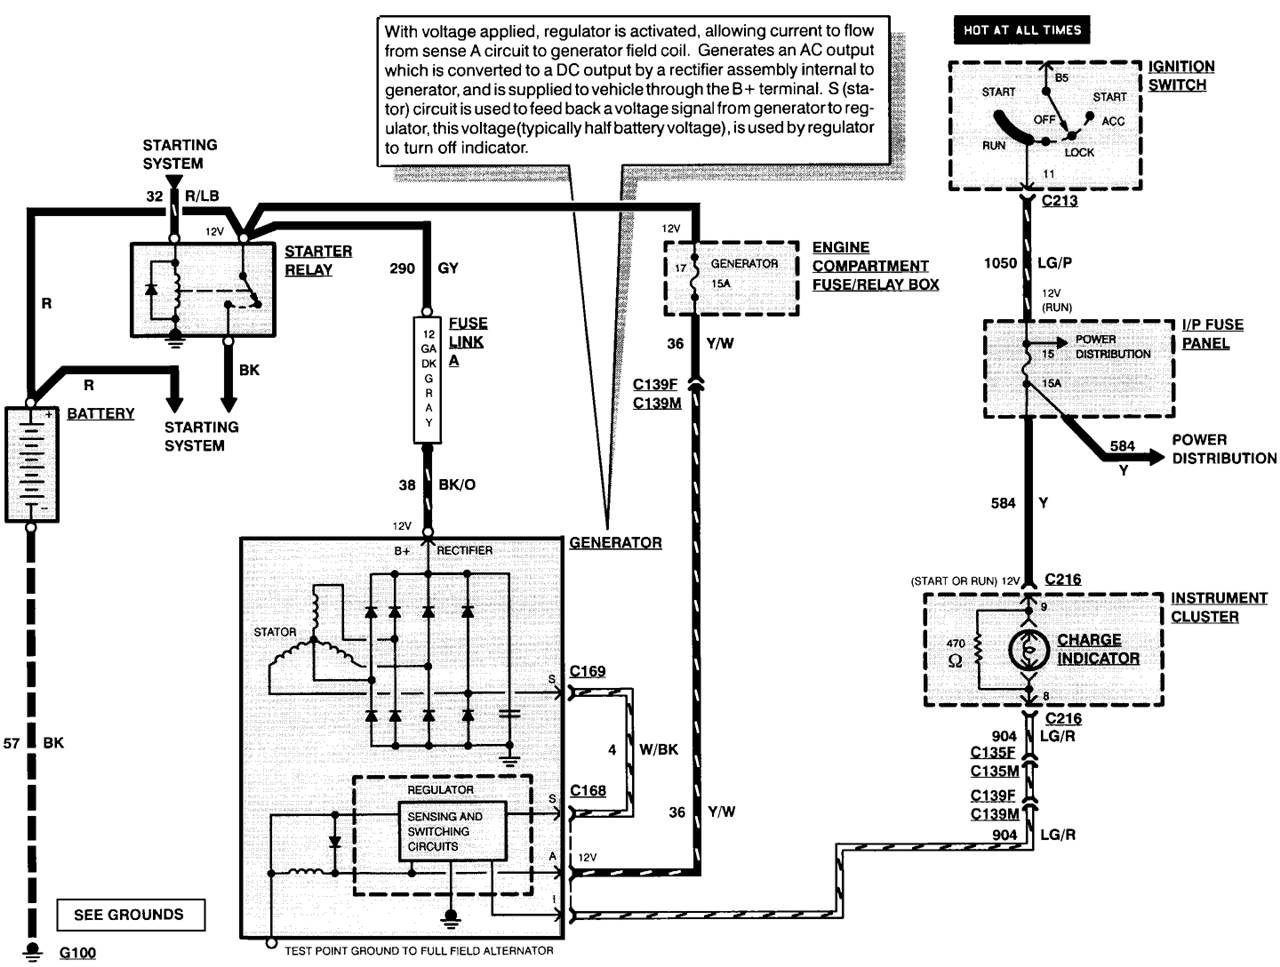 Ford alternator wiring diagram internal regulator?resized665%2C502 mopar wiring diagram powerflex 755 wiring diagrams \u2022 free wiring alternator wiring schematic at pacquiaovsvargaslive.co